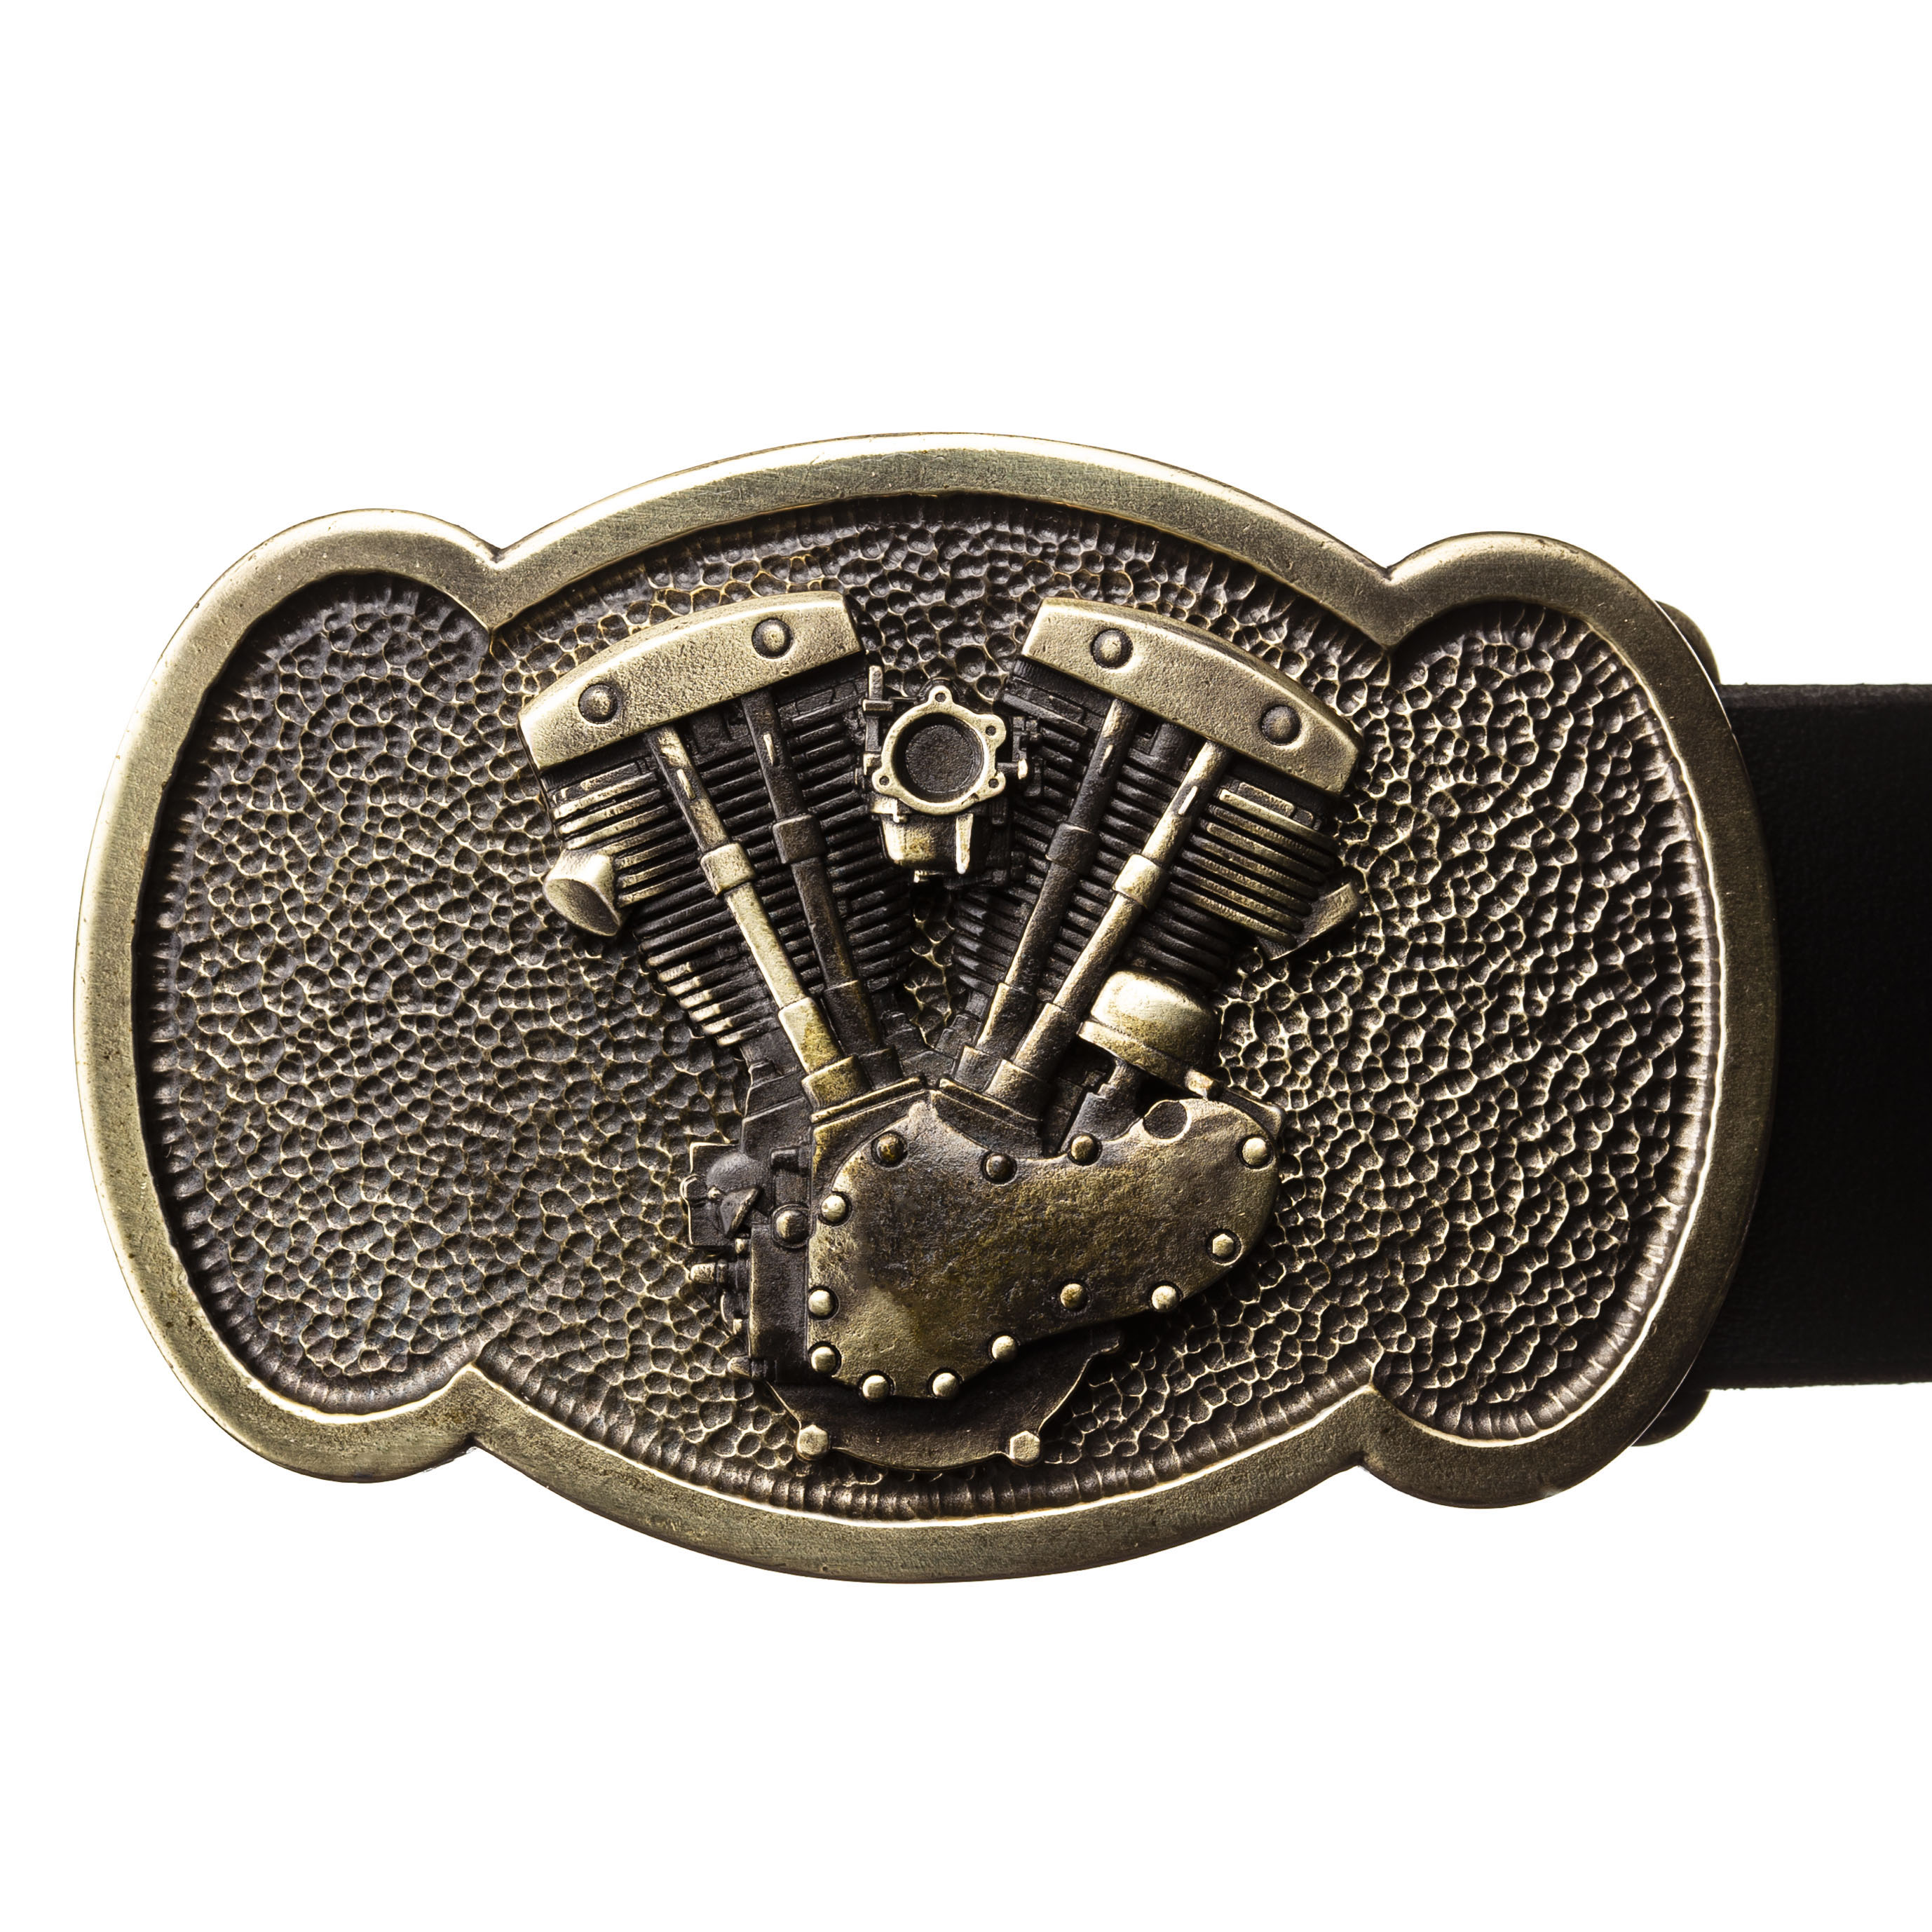 EARLYSHOVEL ENGINE BUCKLE